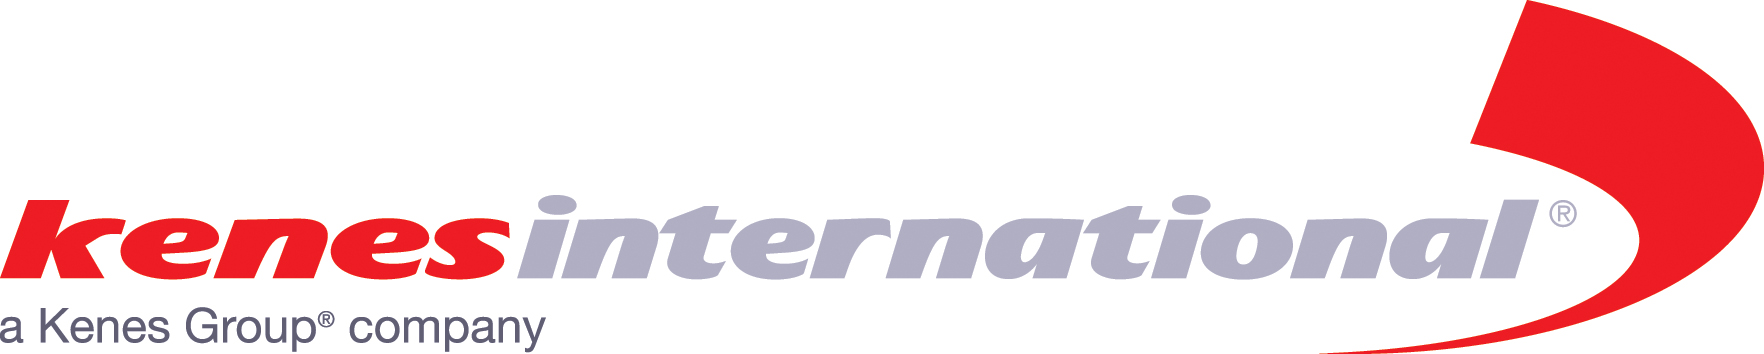 KENES INTERNATIONAL LOGO.jpg